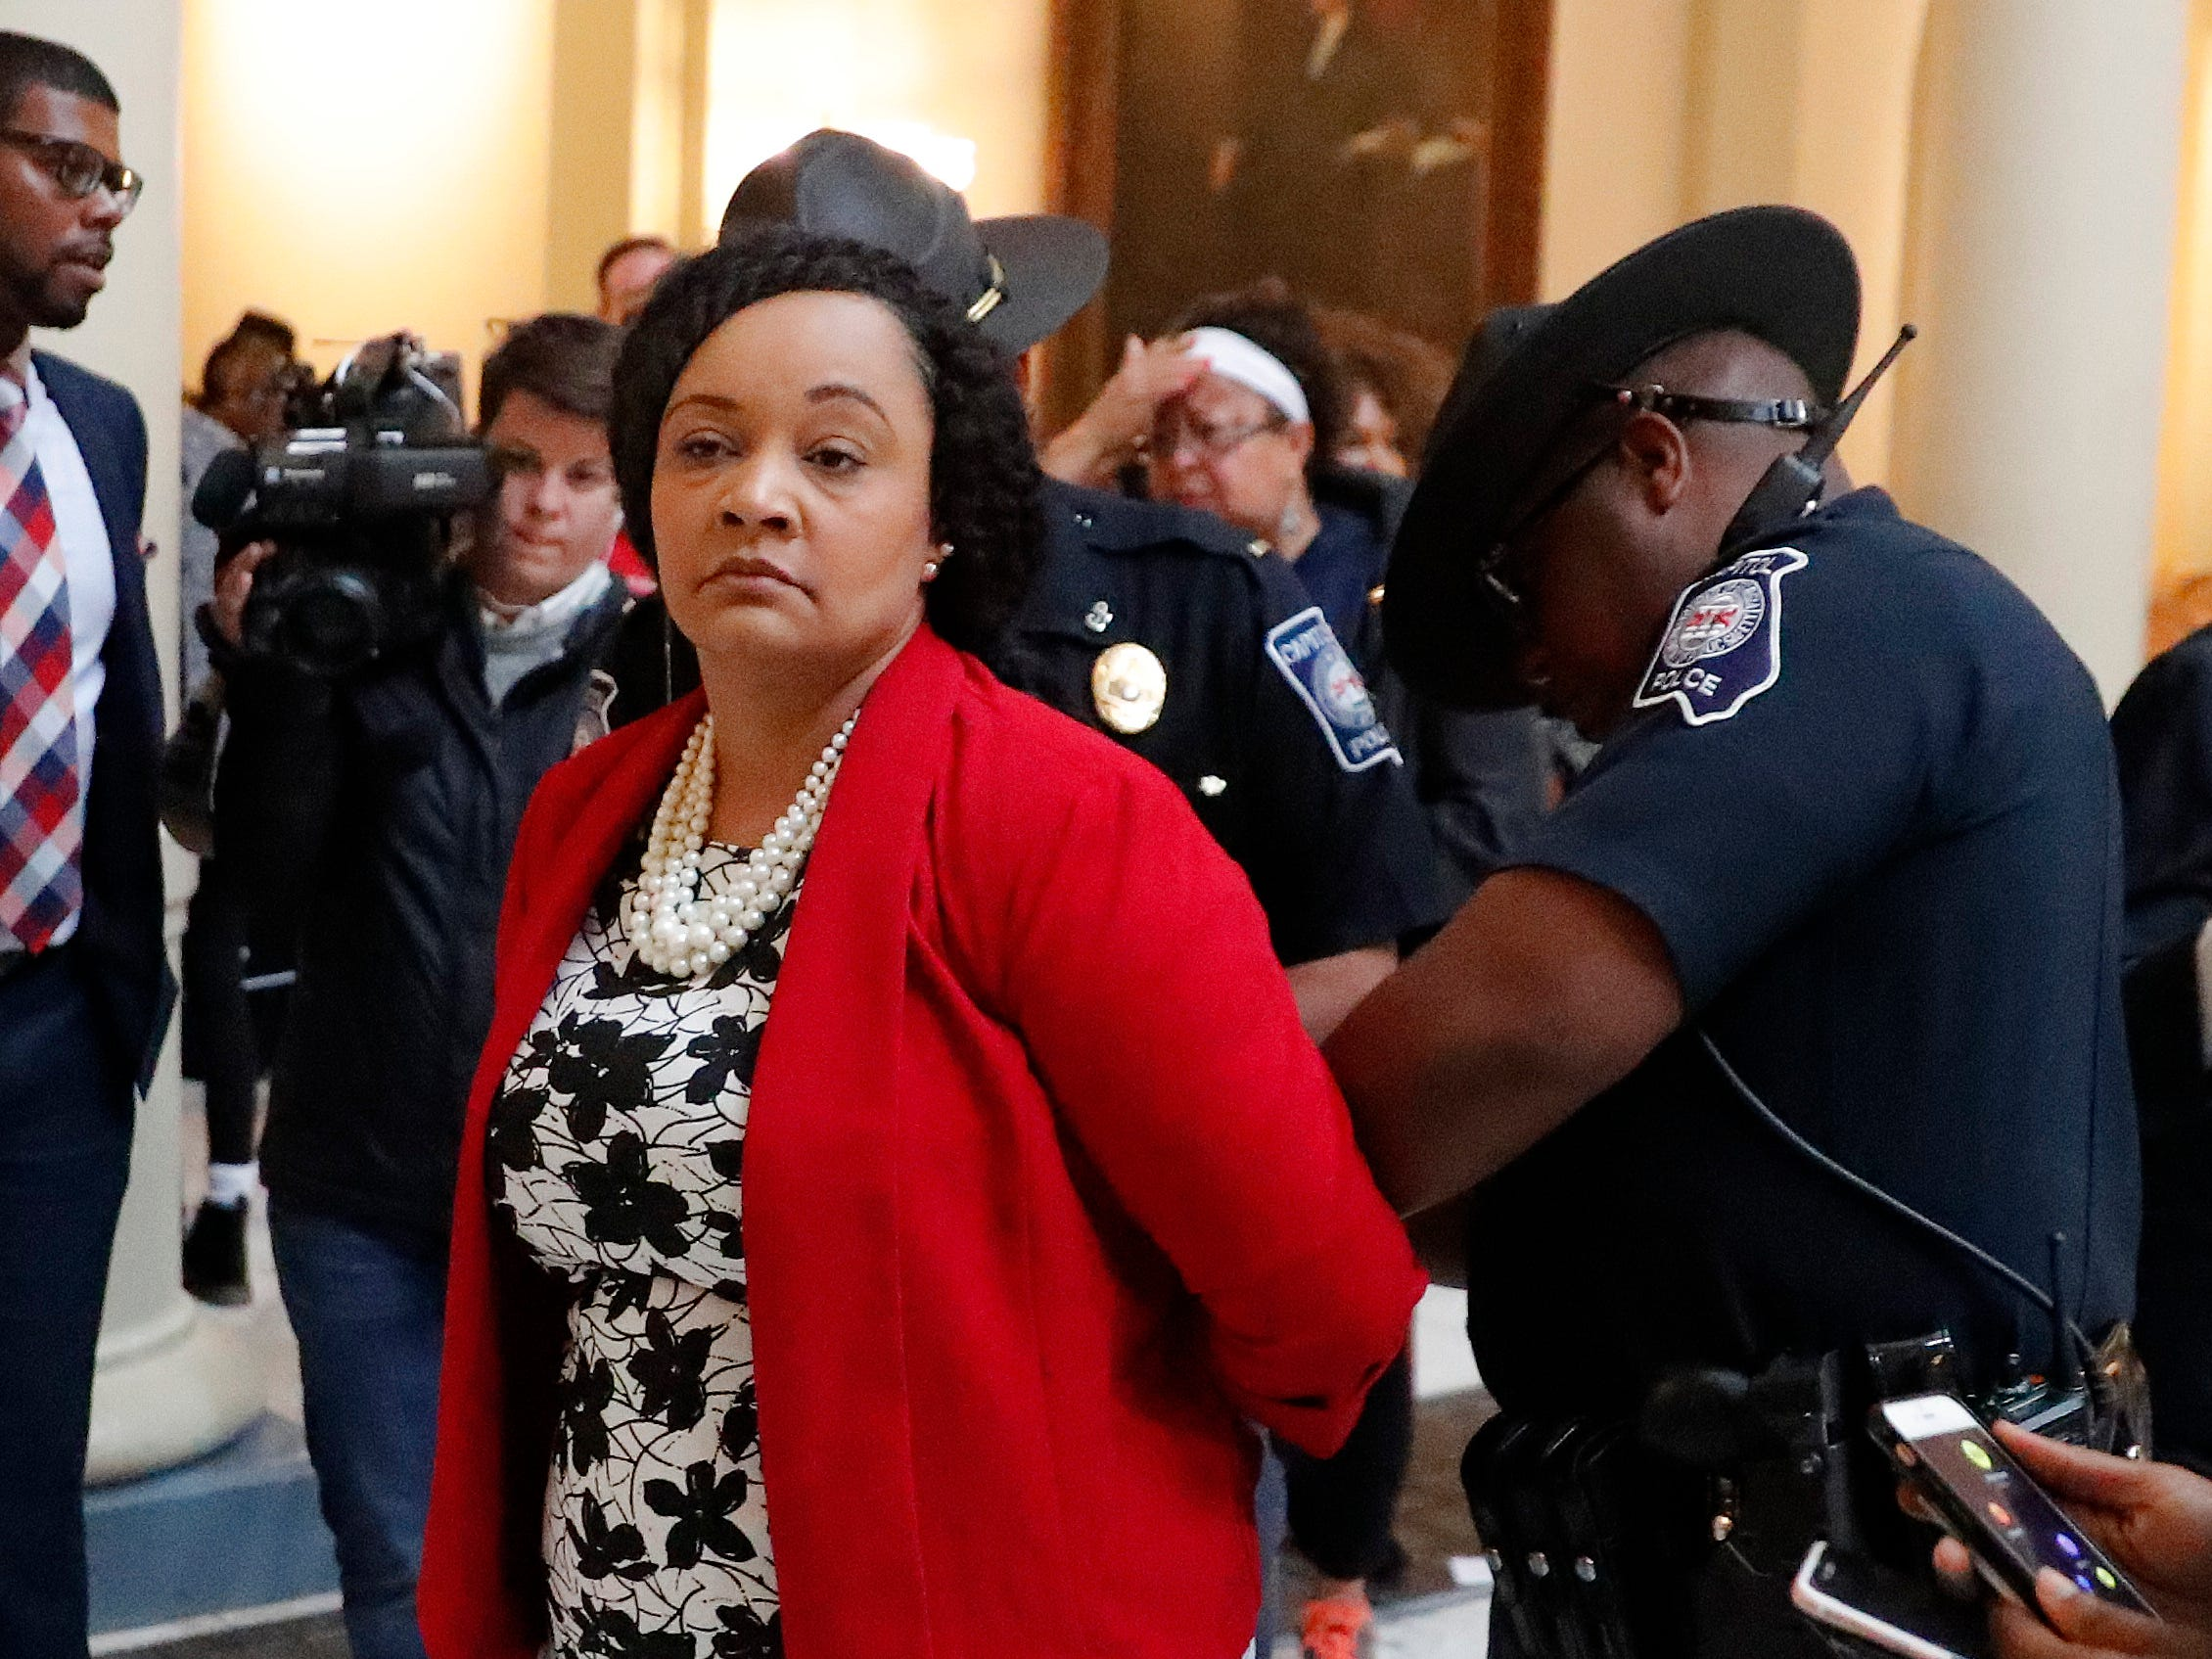 Black female senator: My arrest shows the bias that still exists in justice system